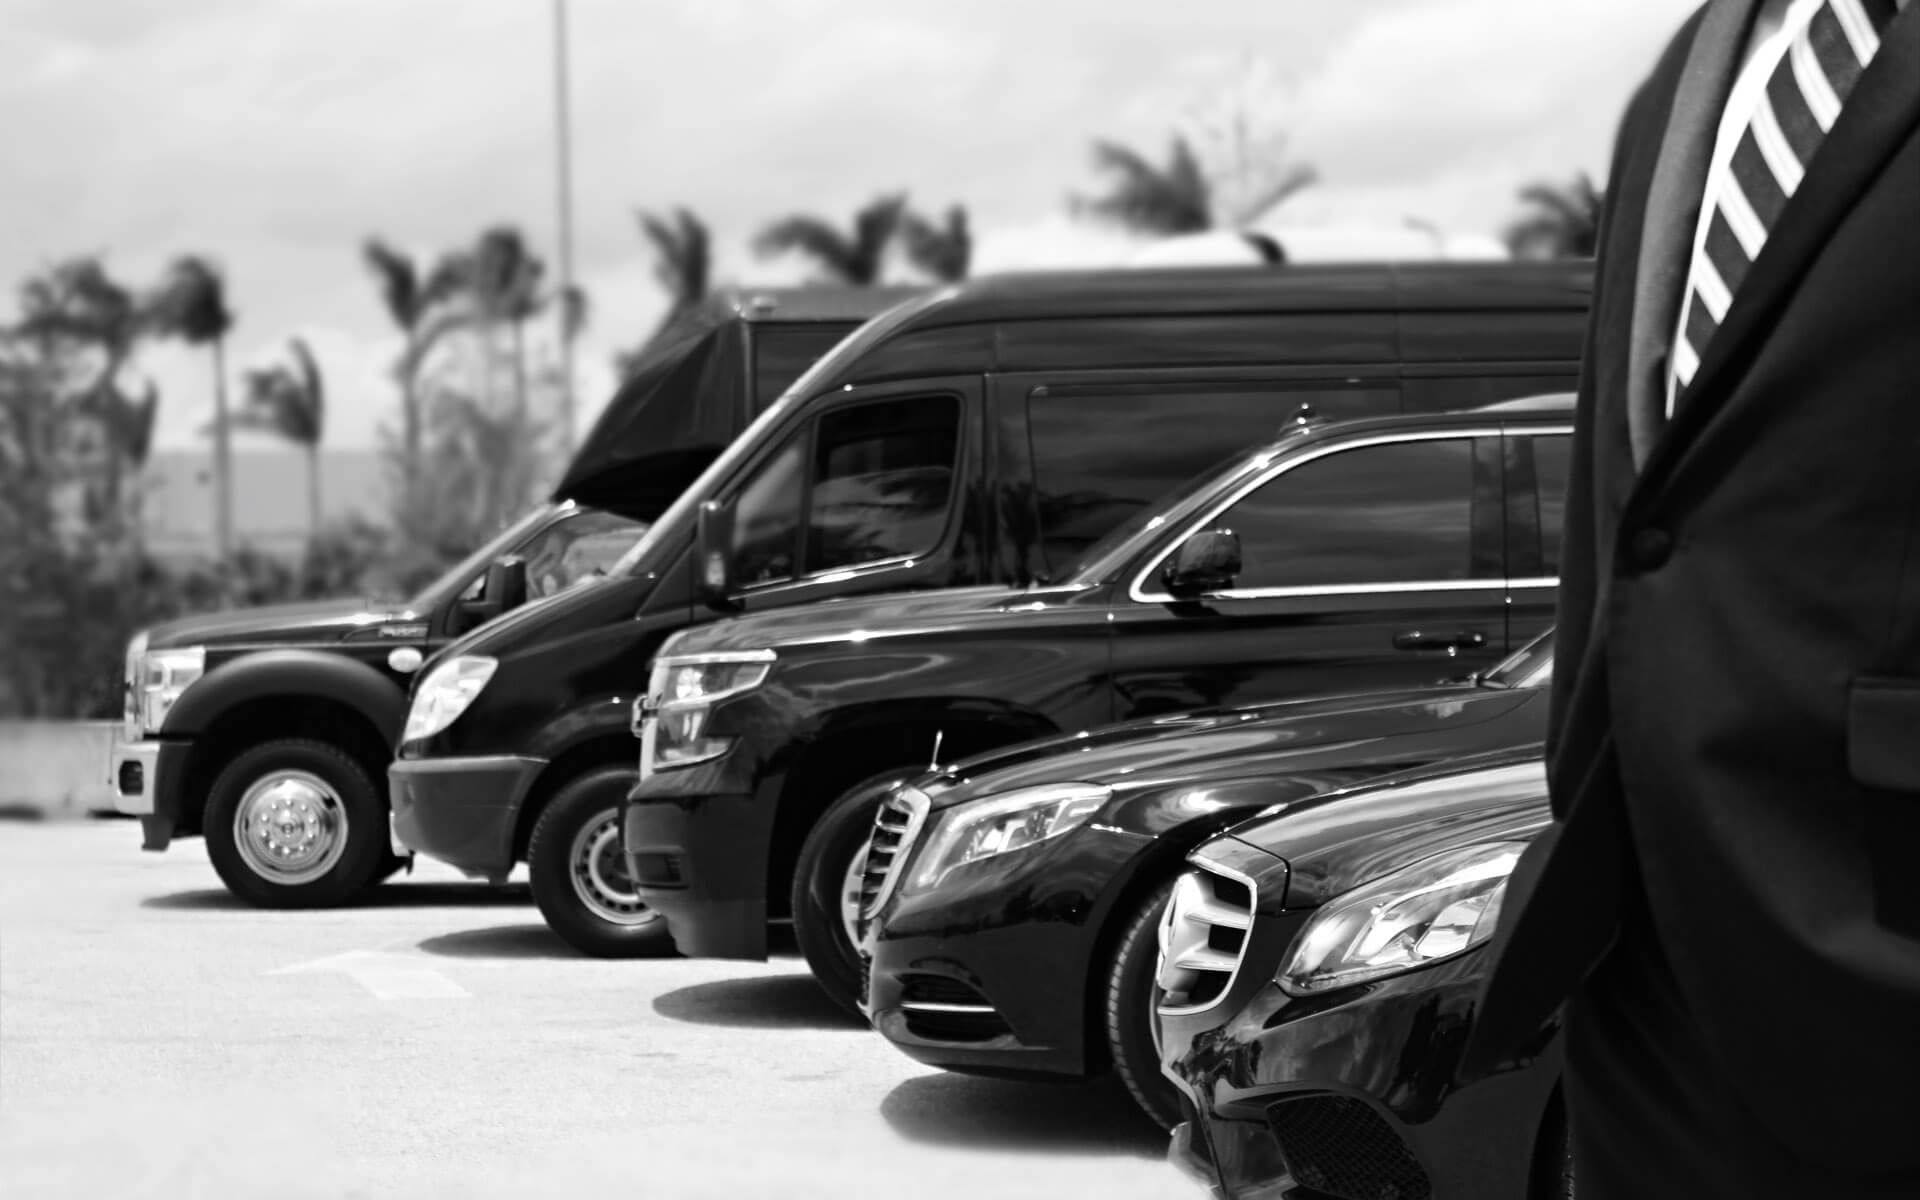 Limo Service Car Service Limousine Car Ride Booking Travel Www Daisylimo Com Daisy Limo In New Jersey Reliable With Images Town Car Service Airport Car Service Limo